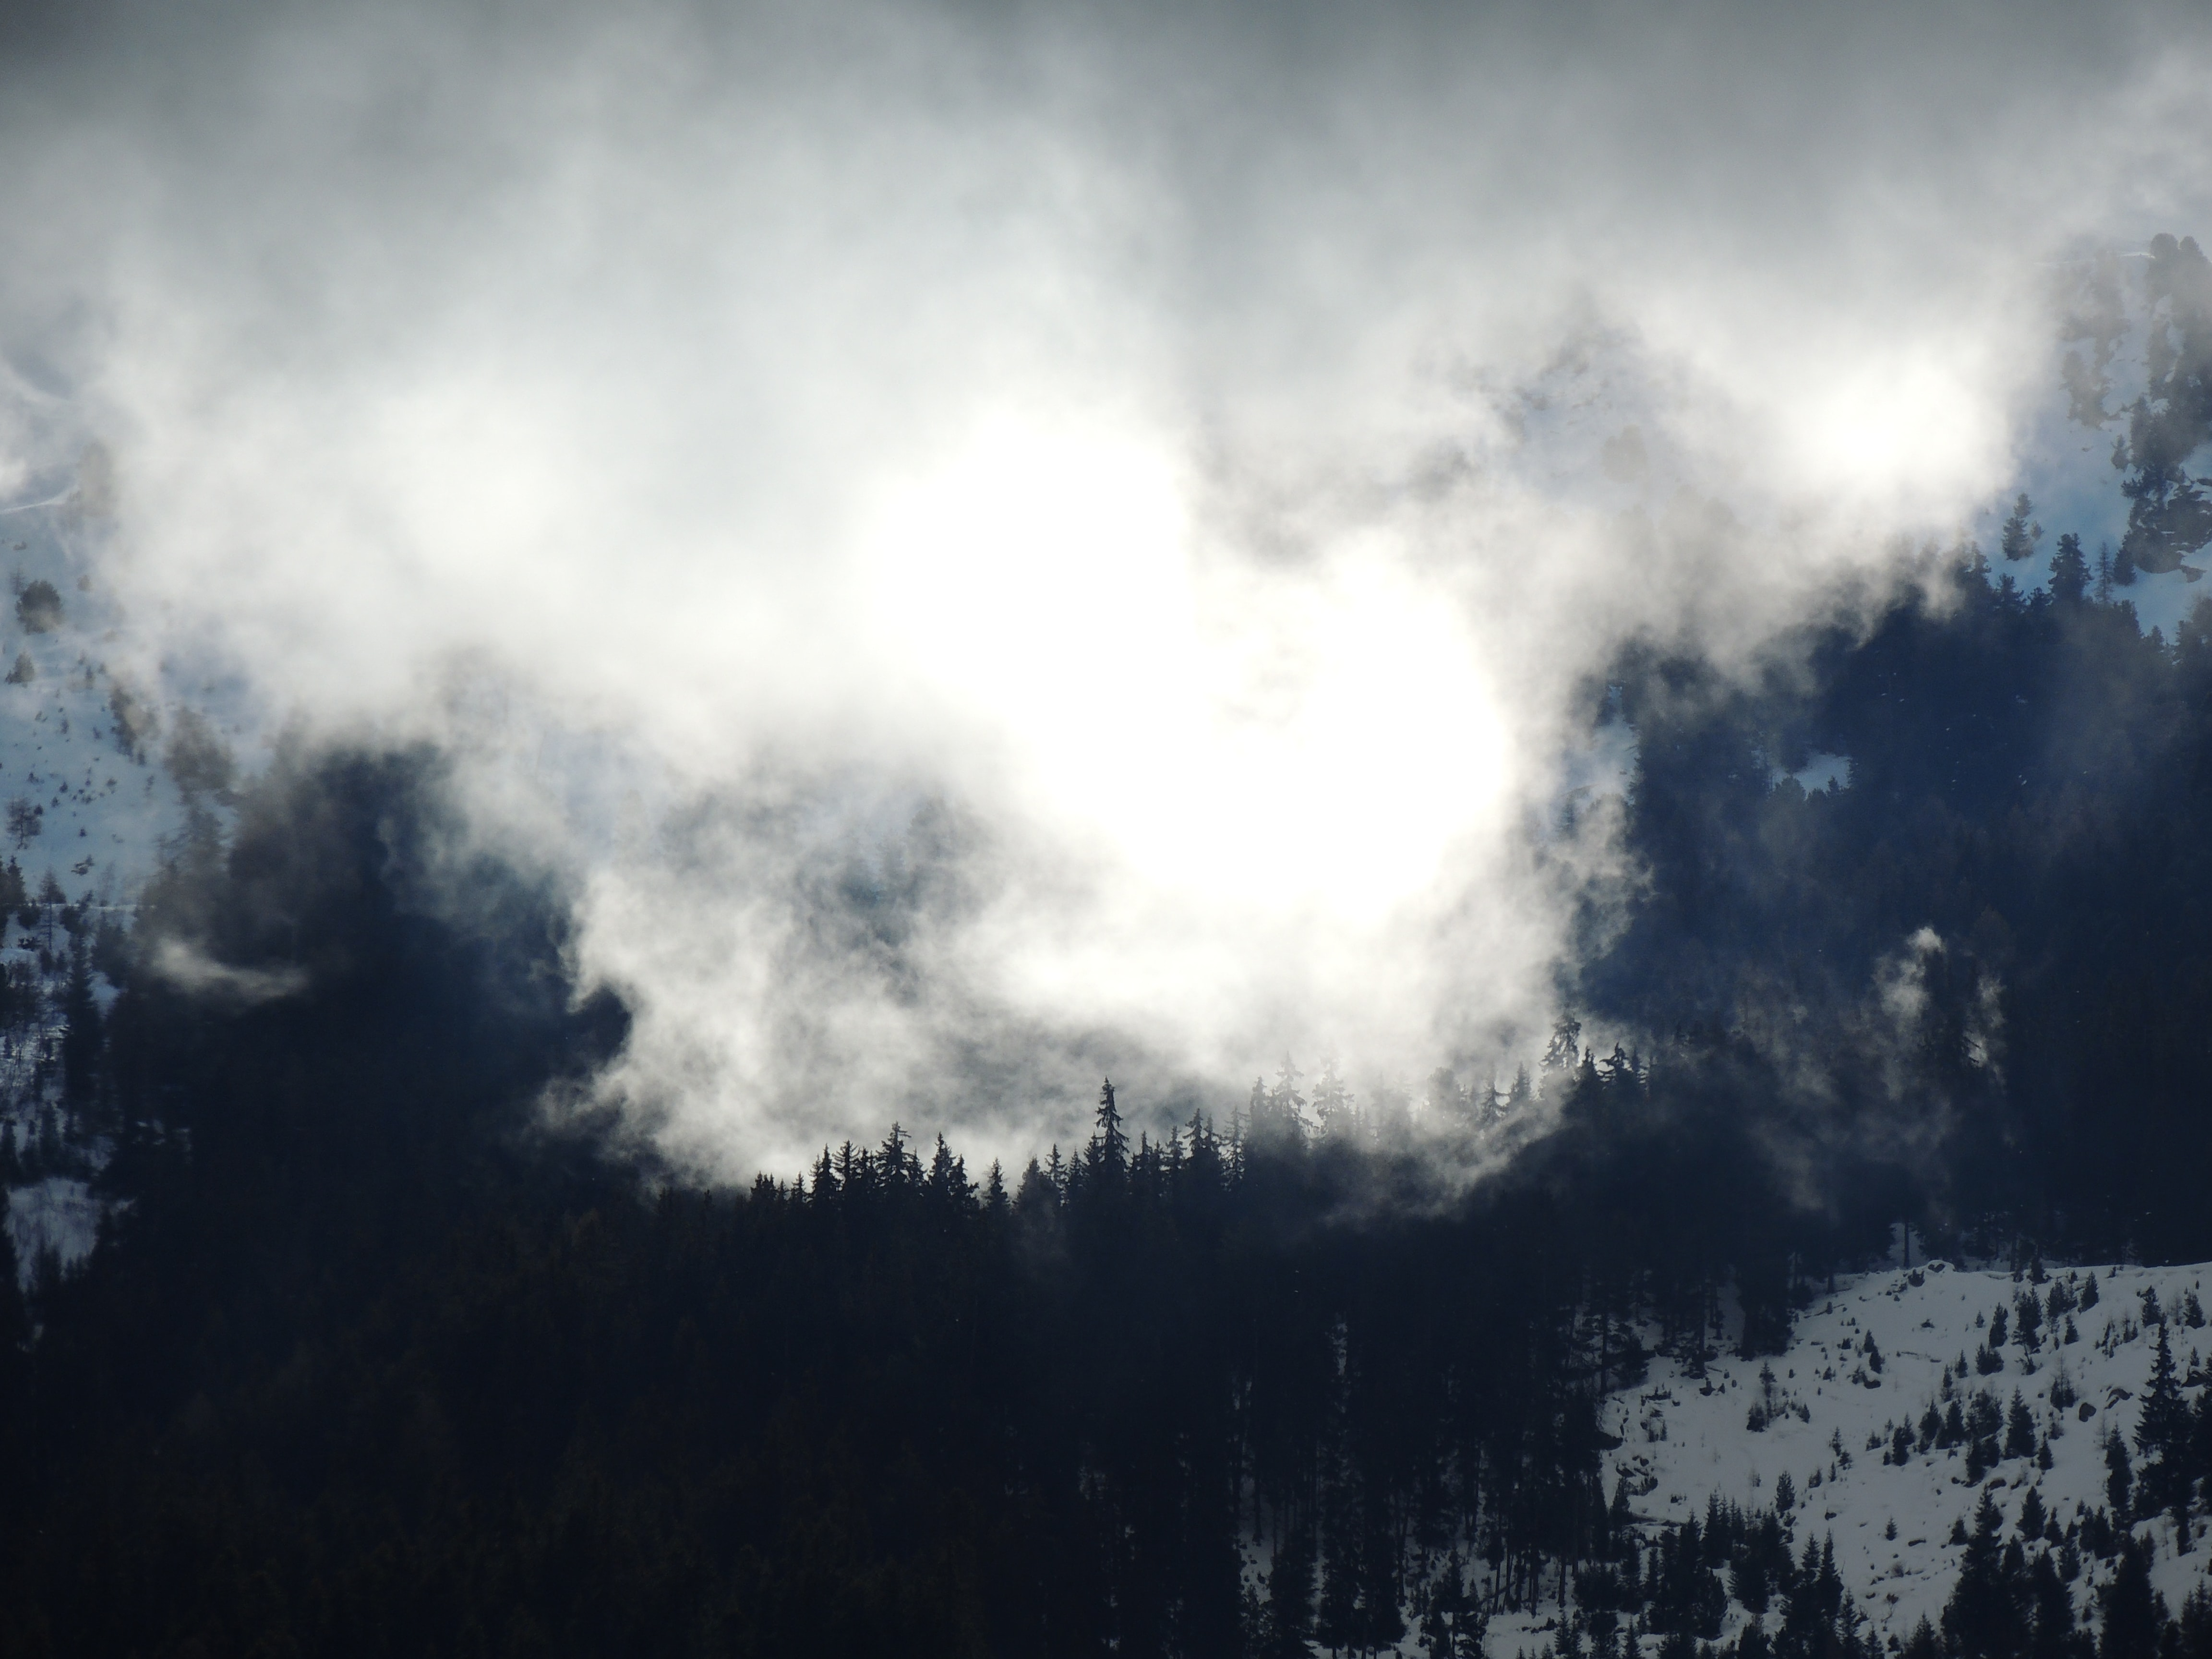 Thick mist obscuring the view on a snowy mountainous landscape in Modane